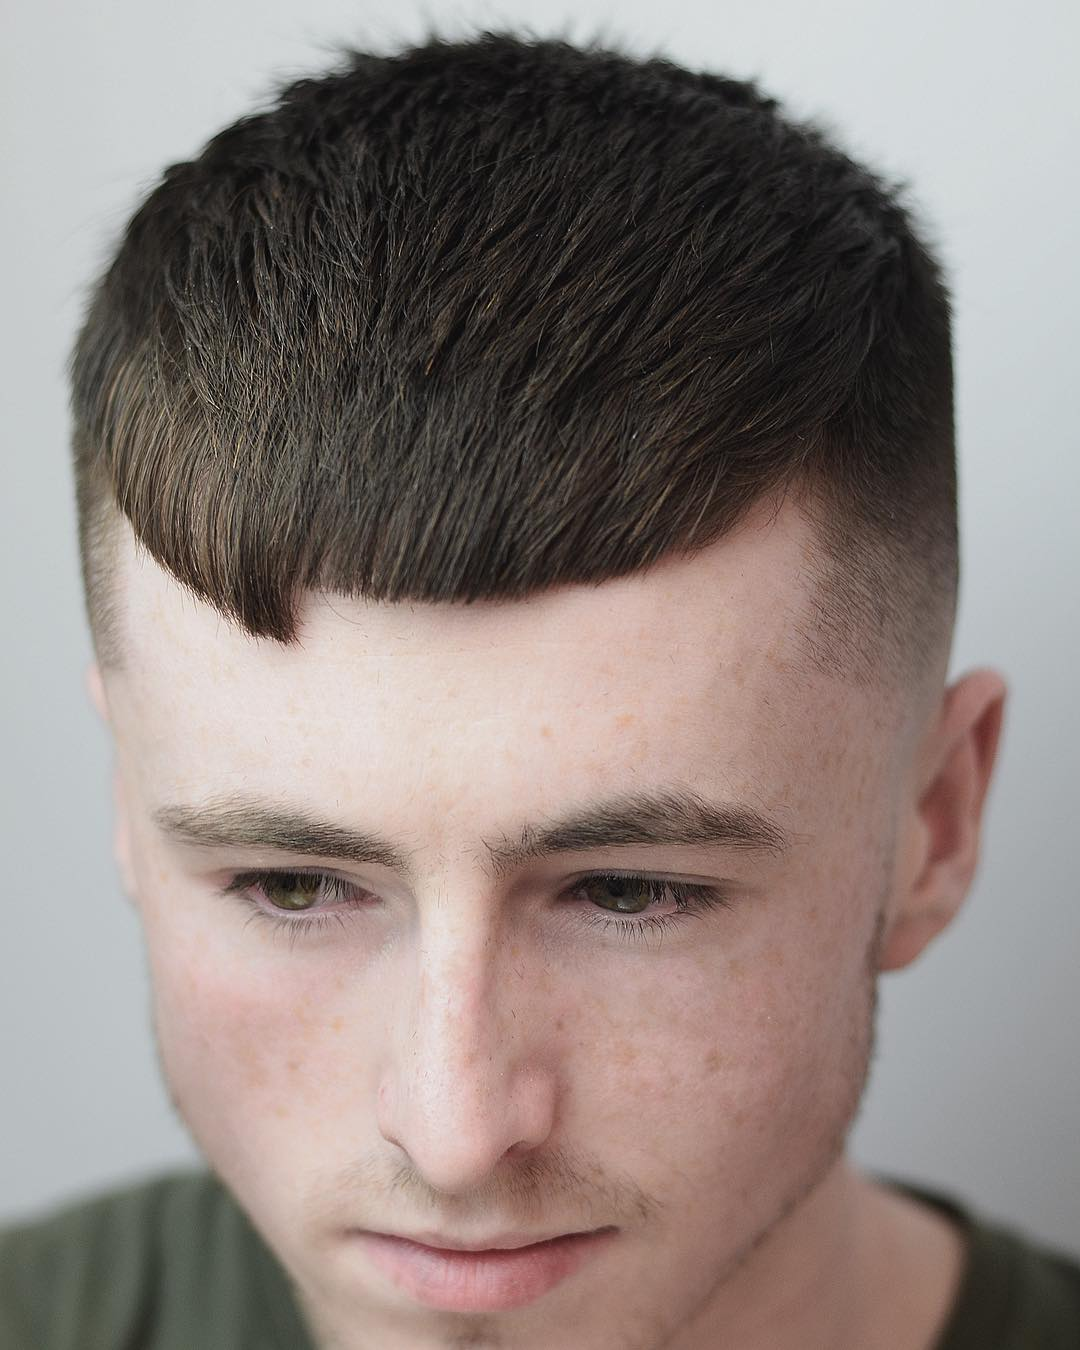 Last easy Cool short haircuts for men 2019 - Hairstyles 2u